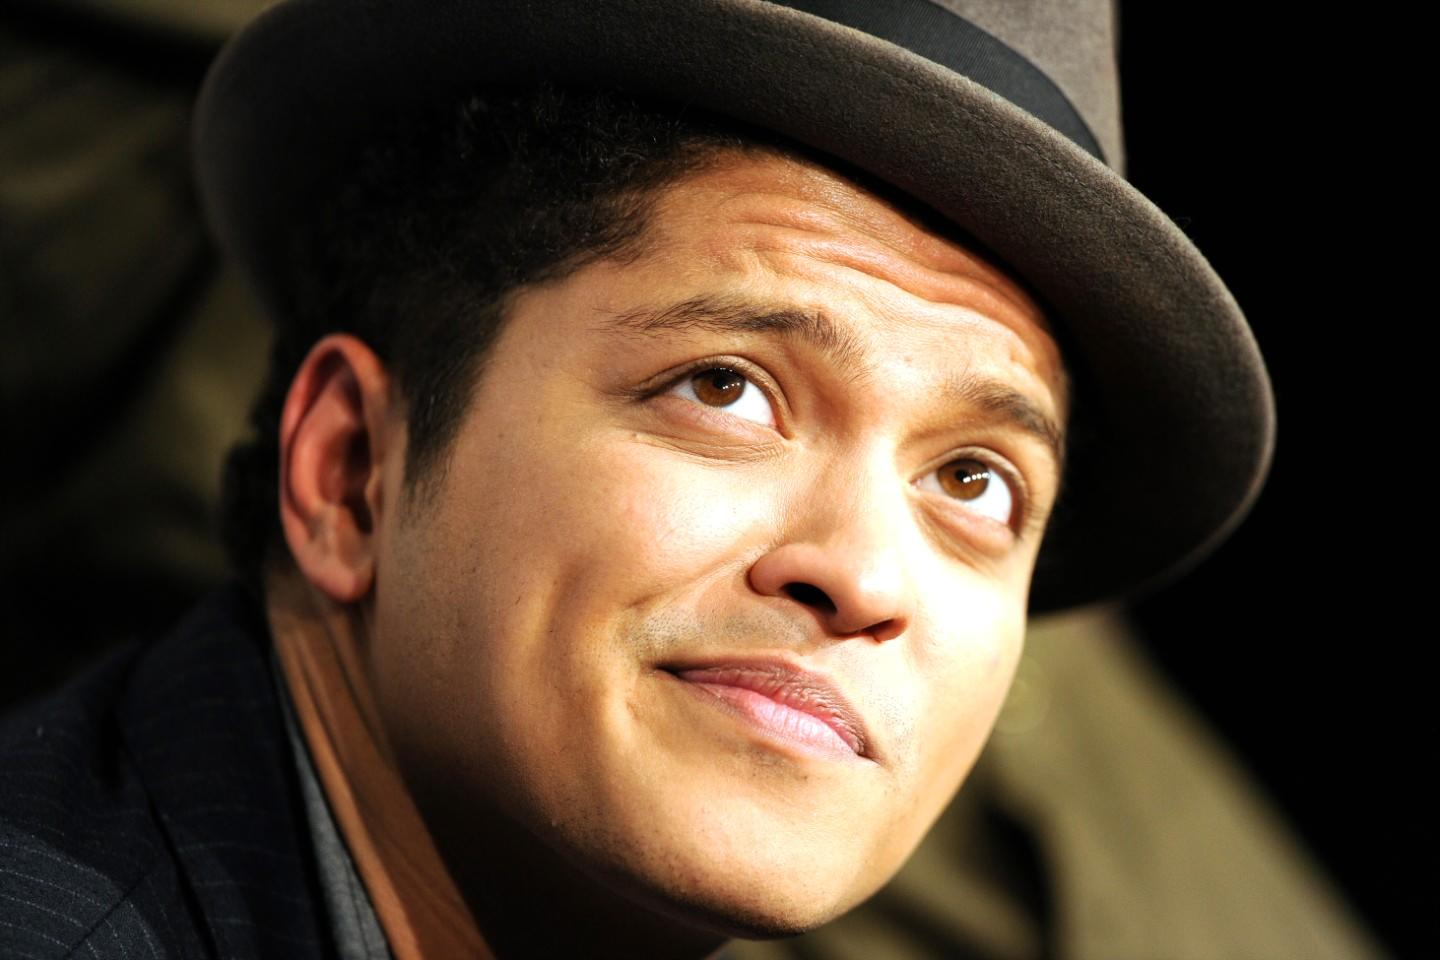 Bruno Mars Tour 2020.Bruno Mars Tickets Bruno Mars Tour 2020 And Concert